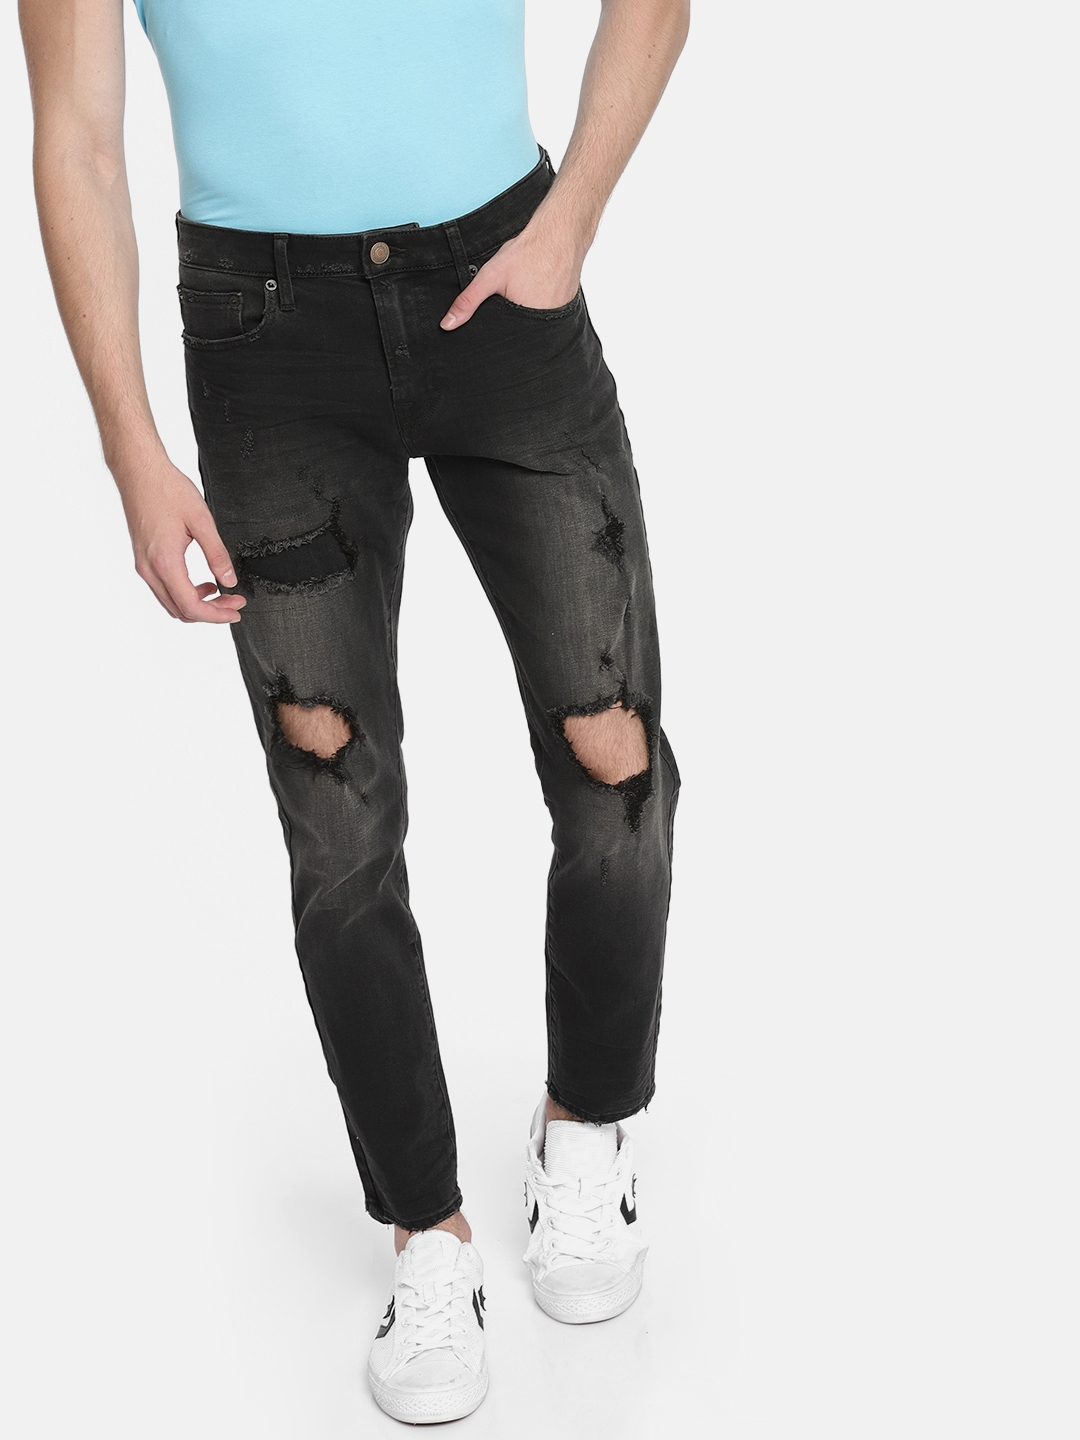 171178feeef Buy AMERICAN EAGLE OUTFITTERS Black Skinny Fit Mid Rise Mildly ...